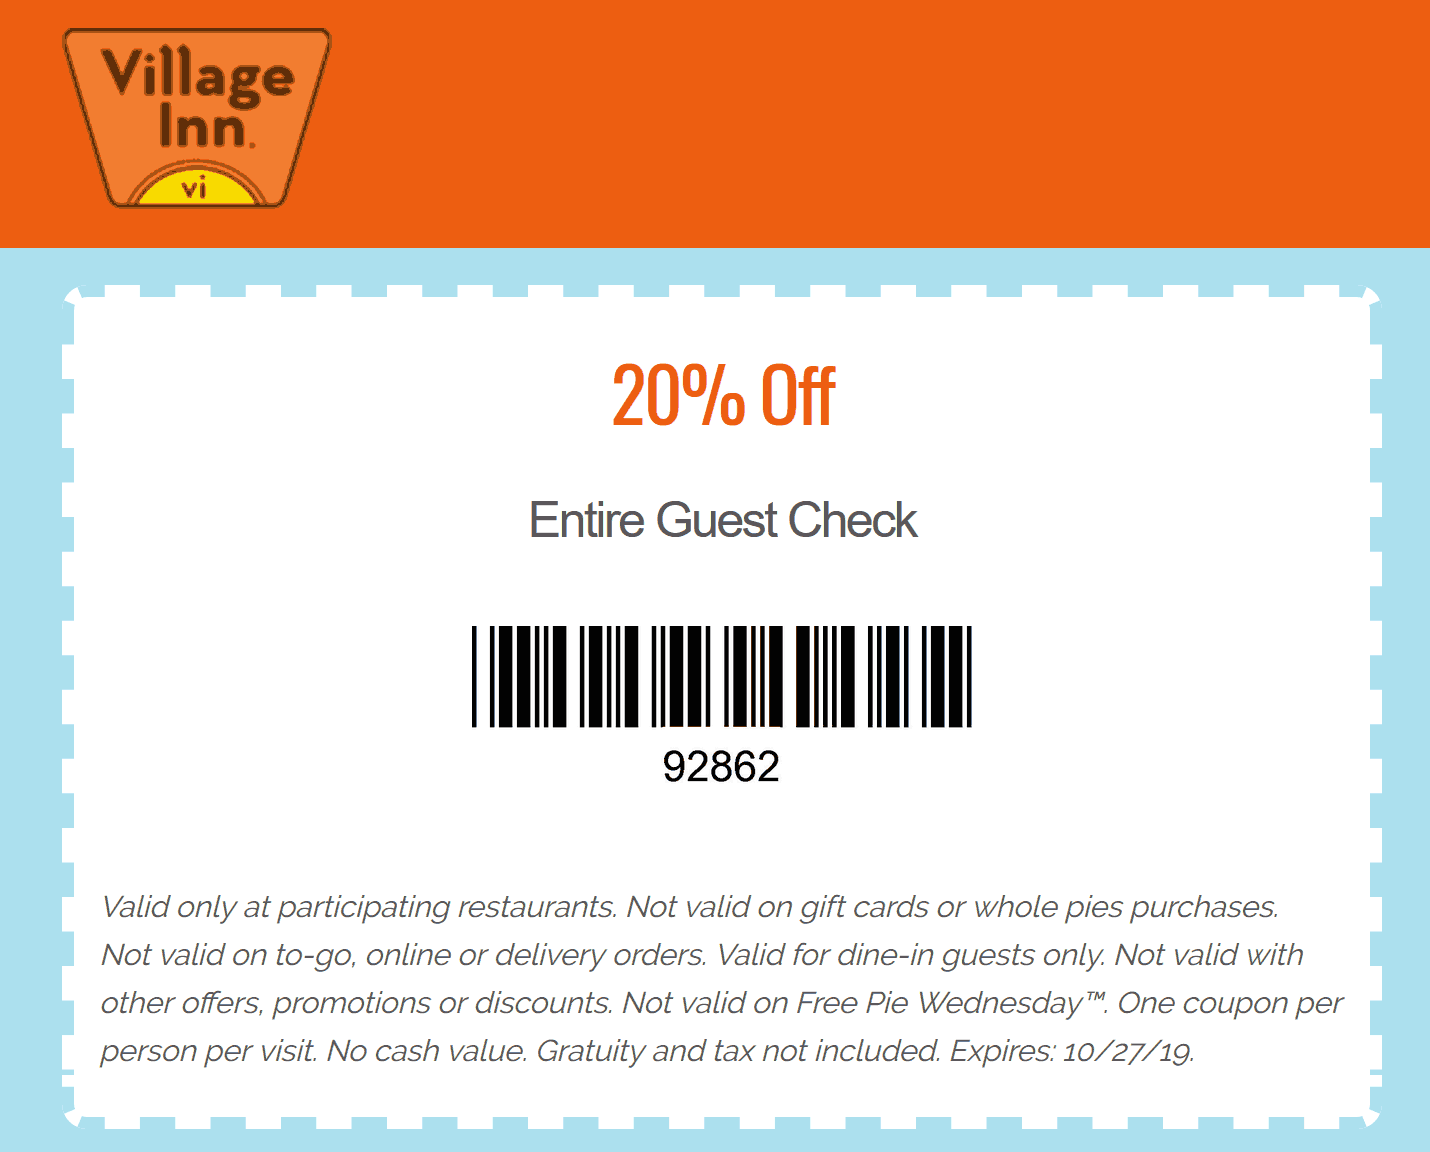 Village Inn Coupon November 2019 20% off at Village Inn restaurants